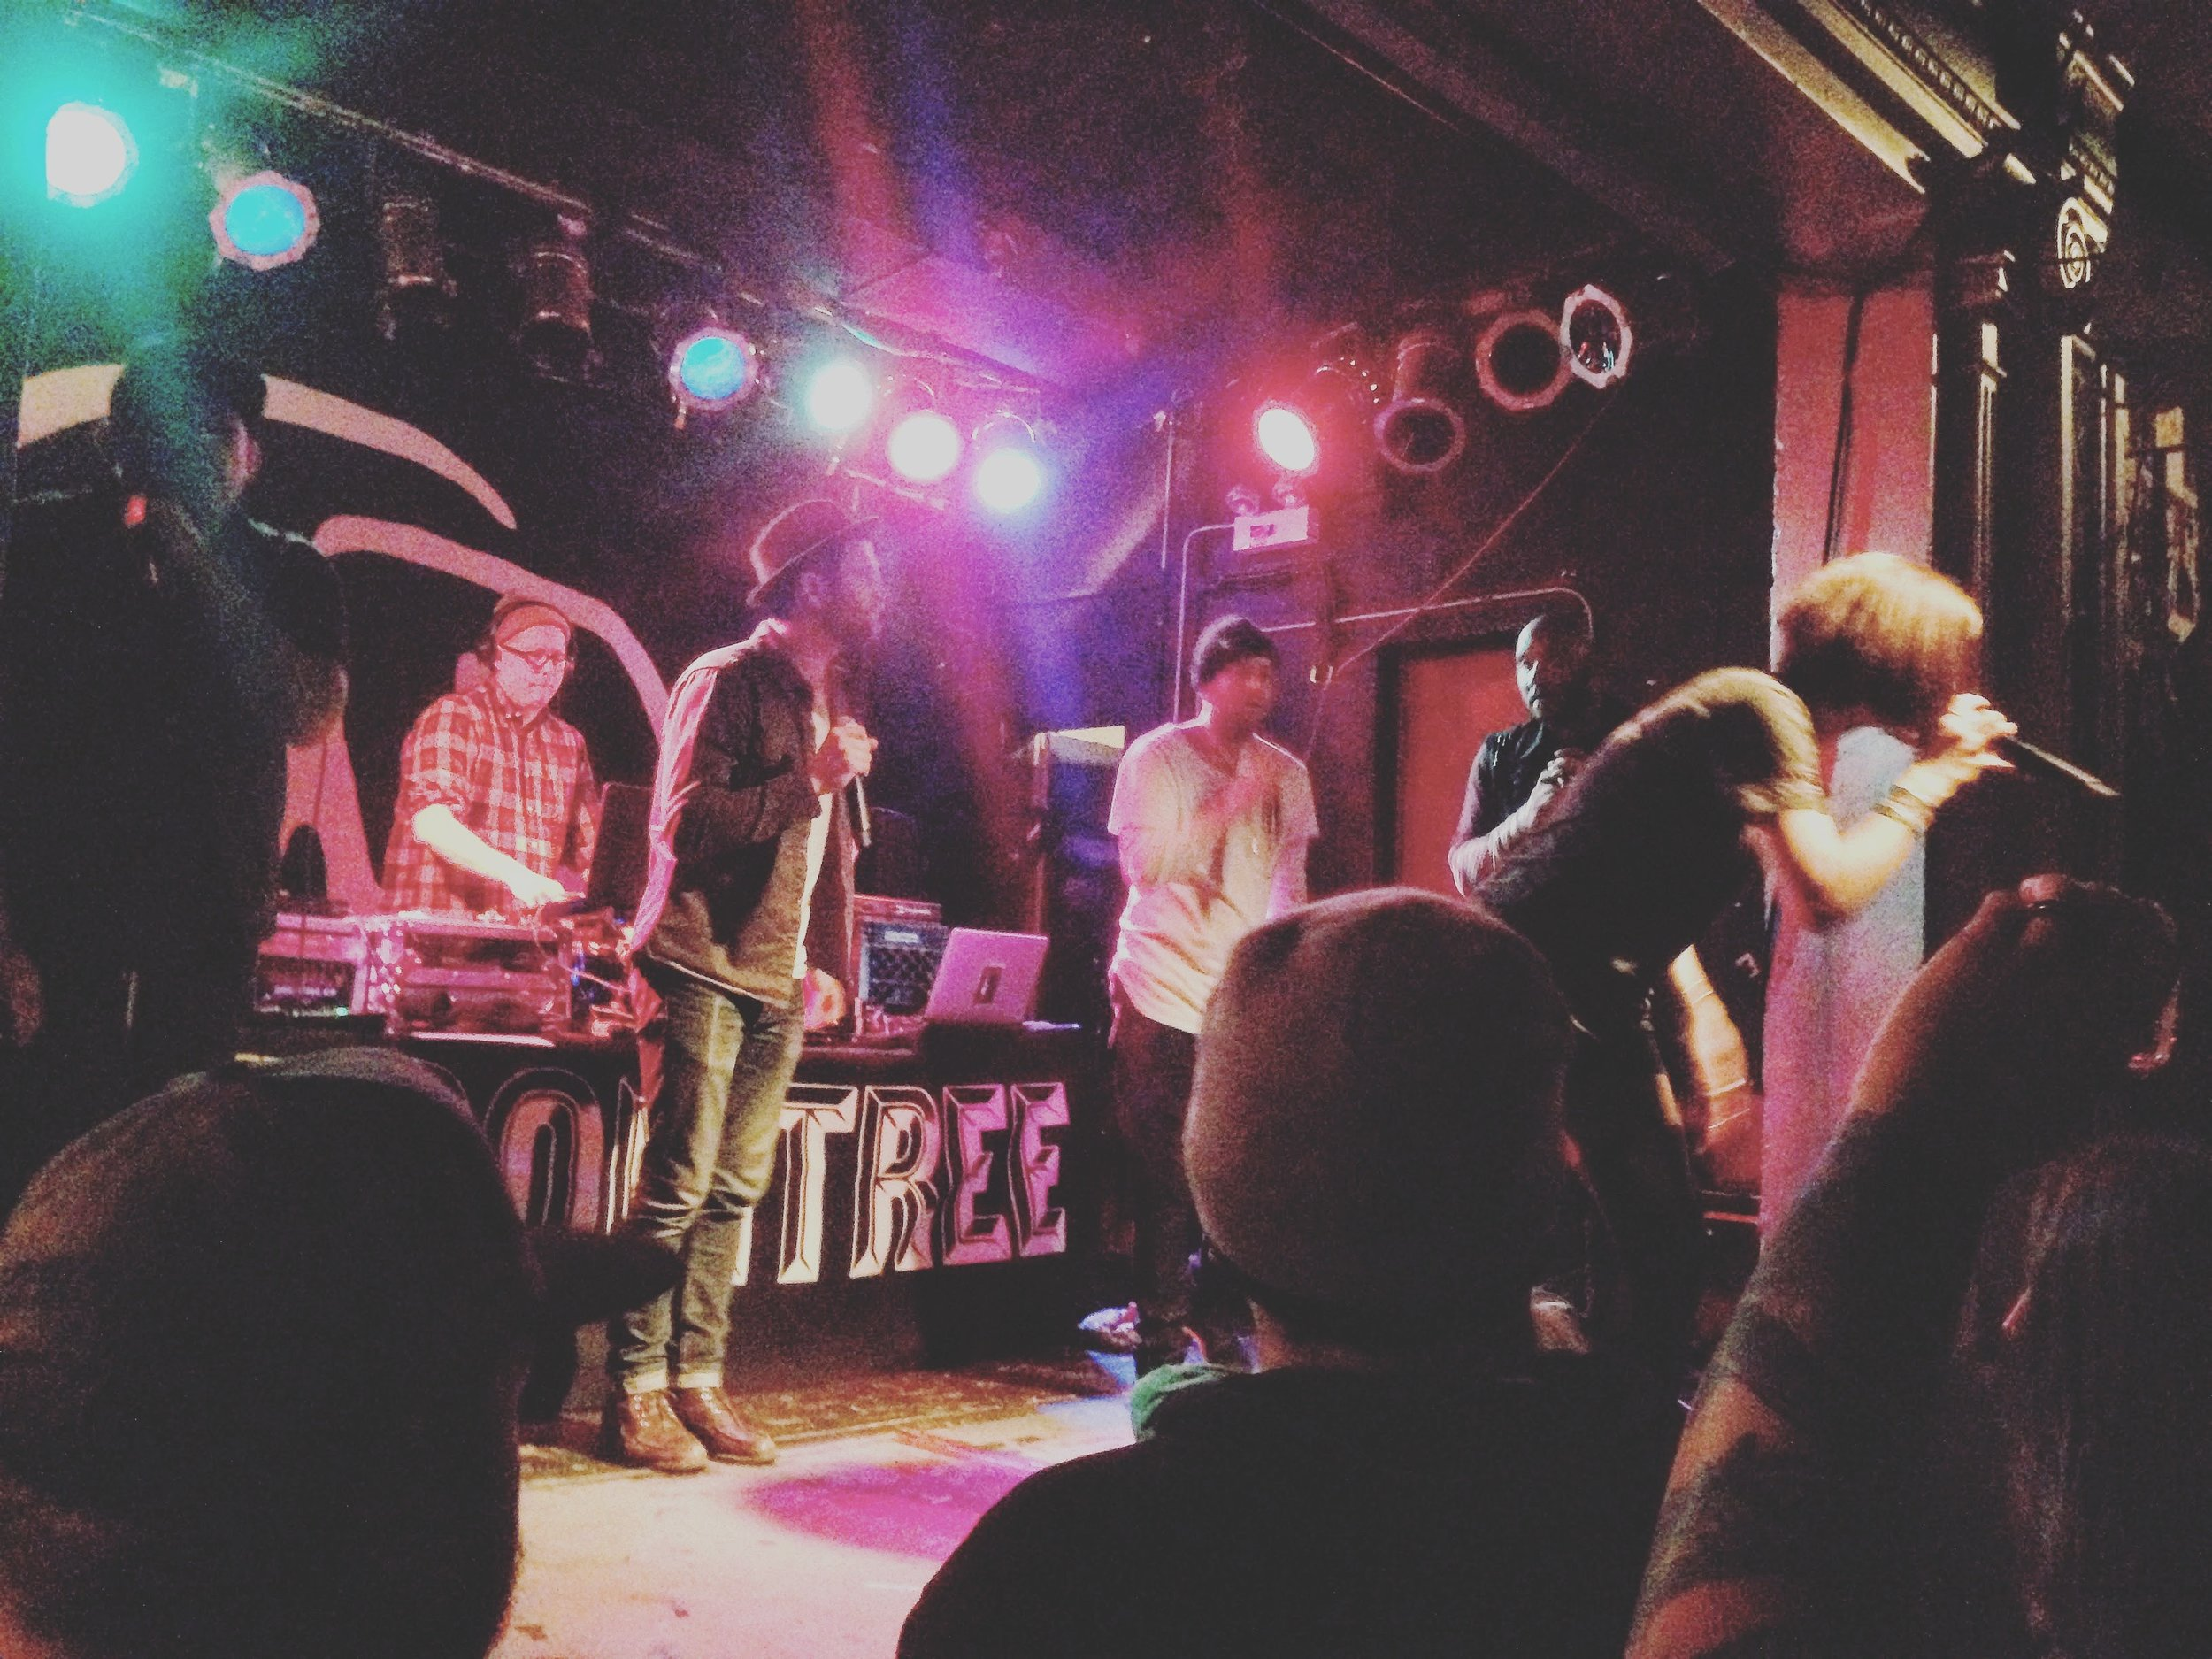 doomtree | chicago | 2.20.15 | @thefaakehipster